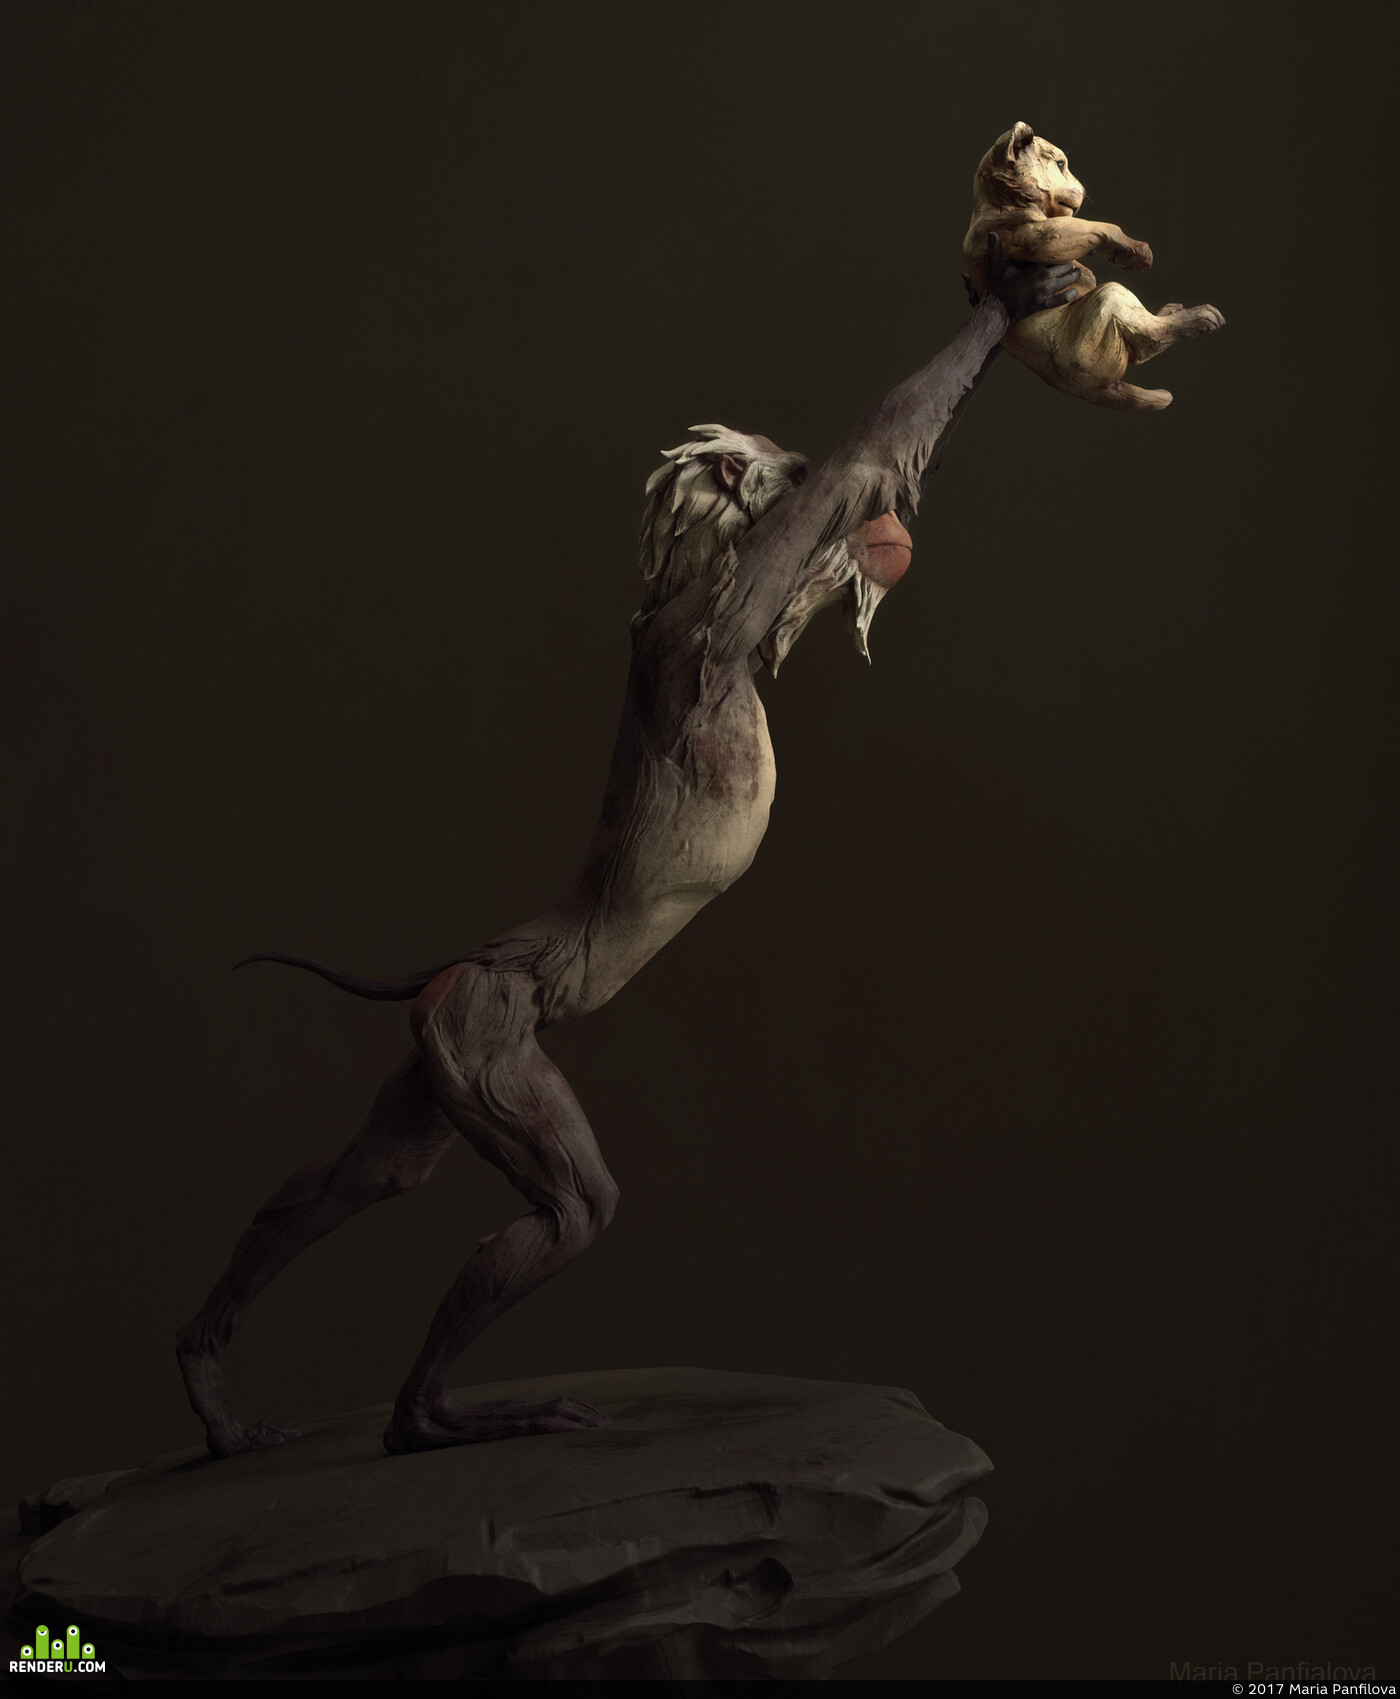 Lion king, lion, Simba, Cub, cat, sculpture, gesture